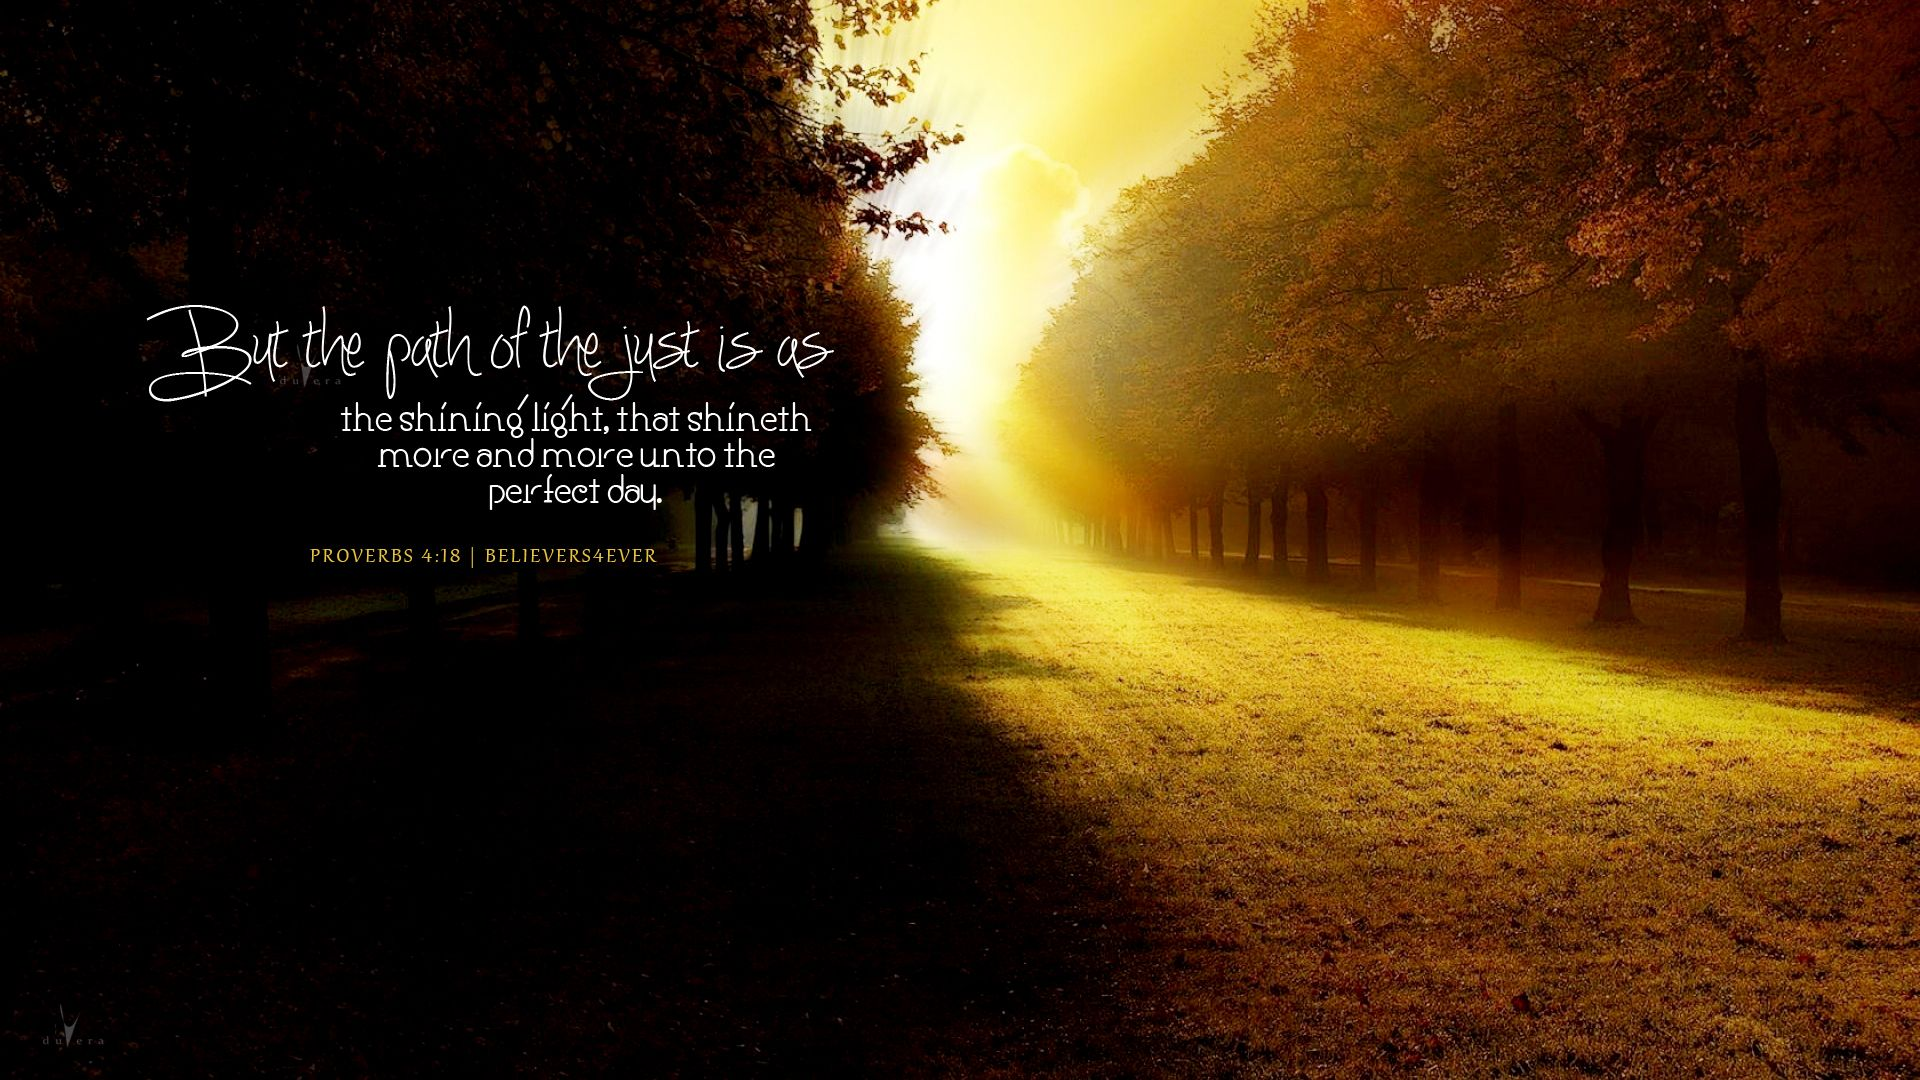 The Path Of The Just Christian Desktop Wallpaper From Believers4ever 1920 1080 Christian Screensavers Christian Wallpaper Free Christian Wallpaper